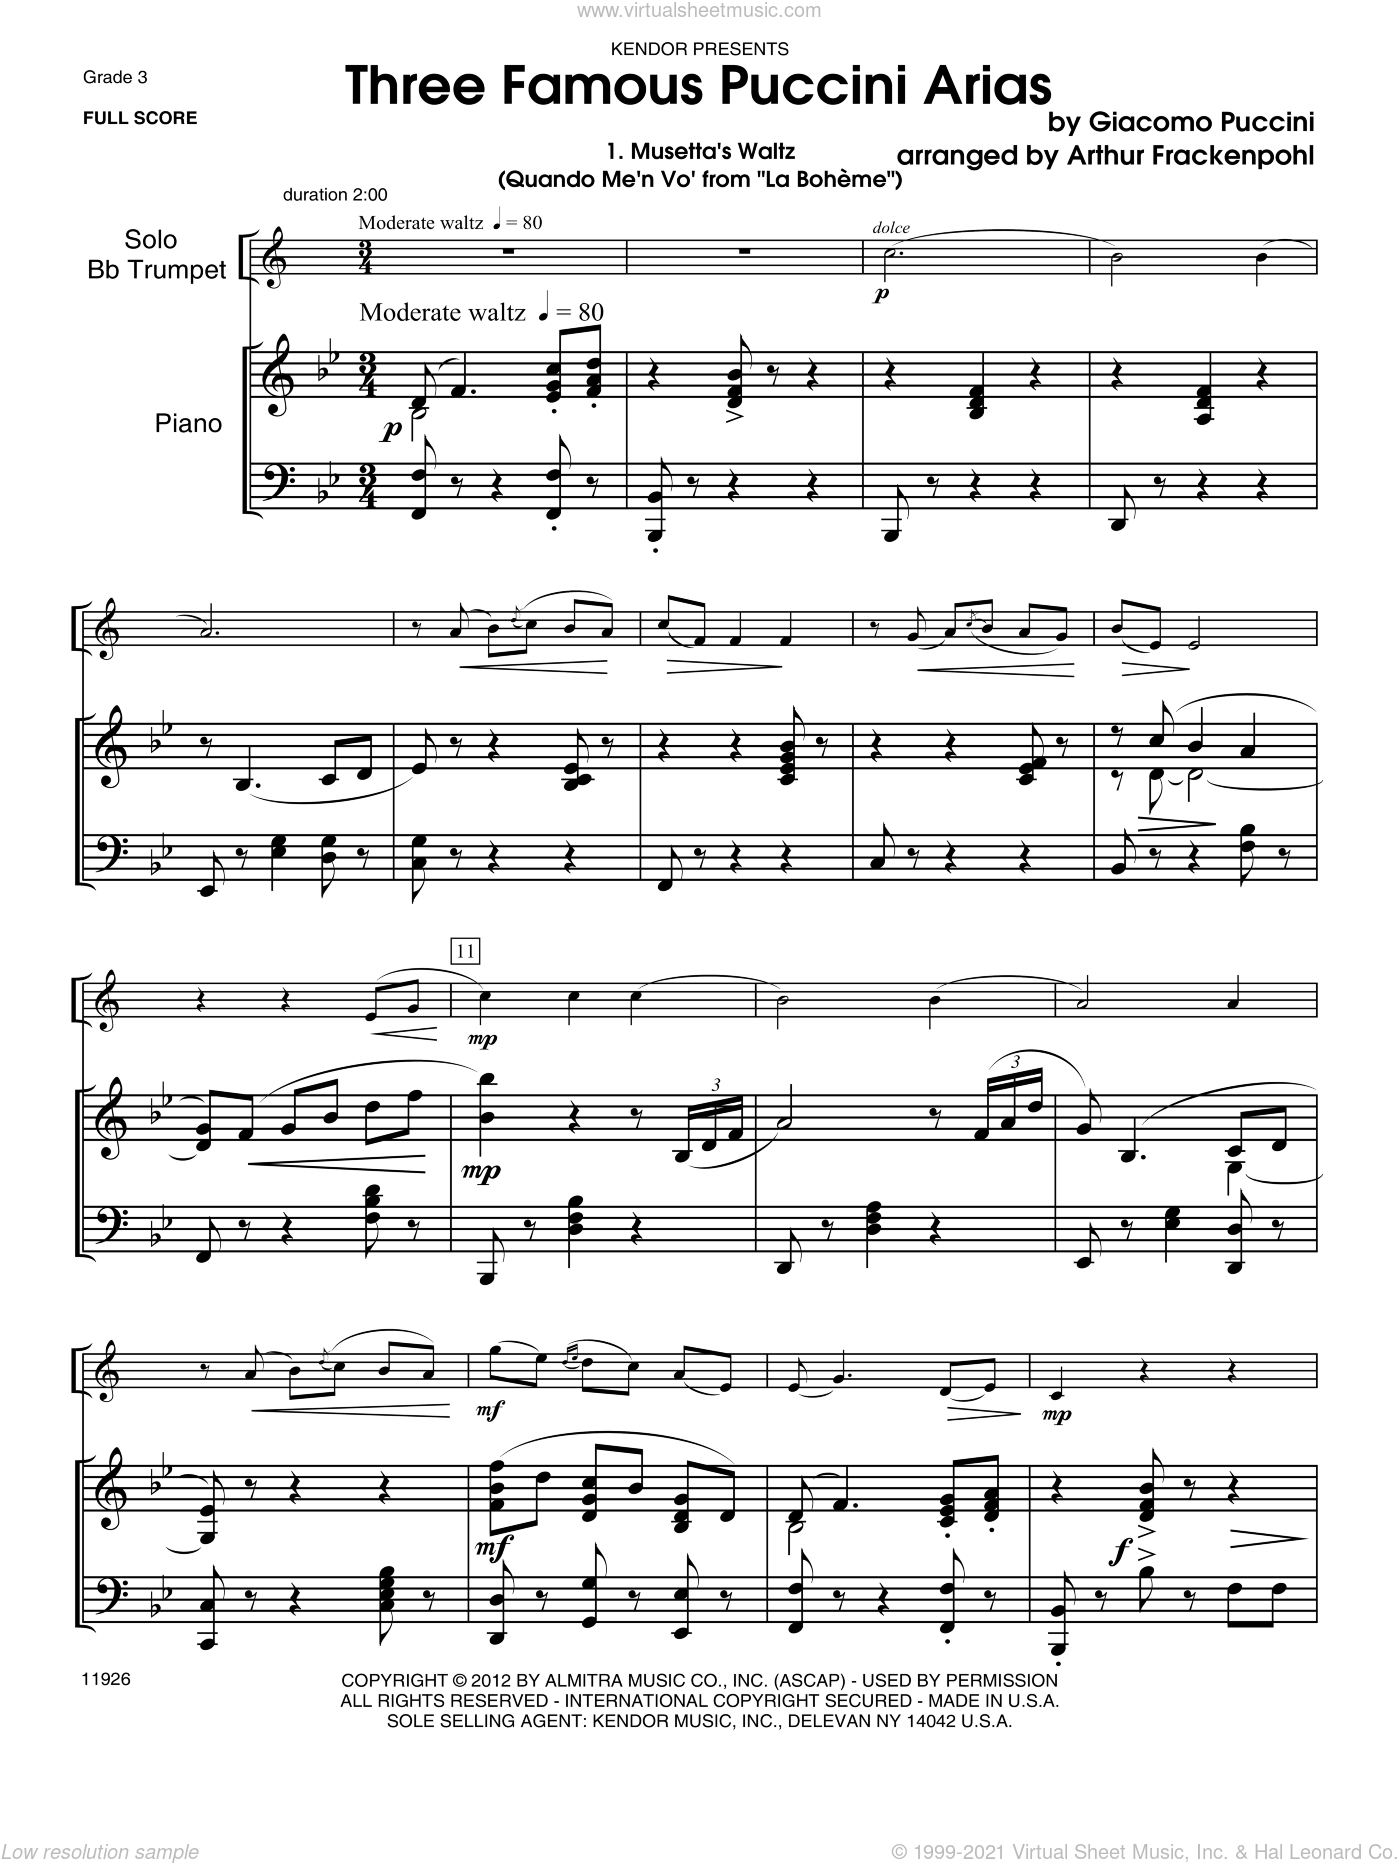 Three Famous Puccini Arias sheet music for trumpet and piano (piano/score) by Giacomo Puccini